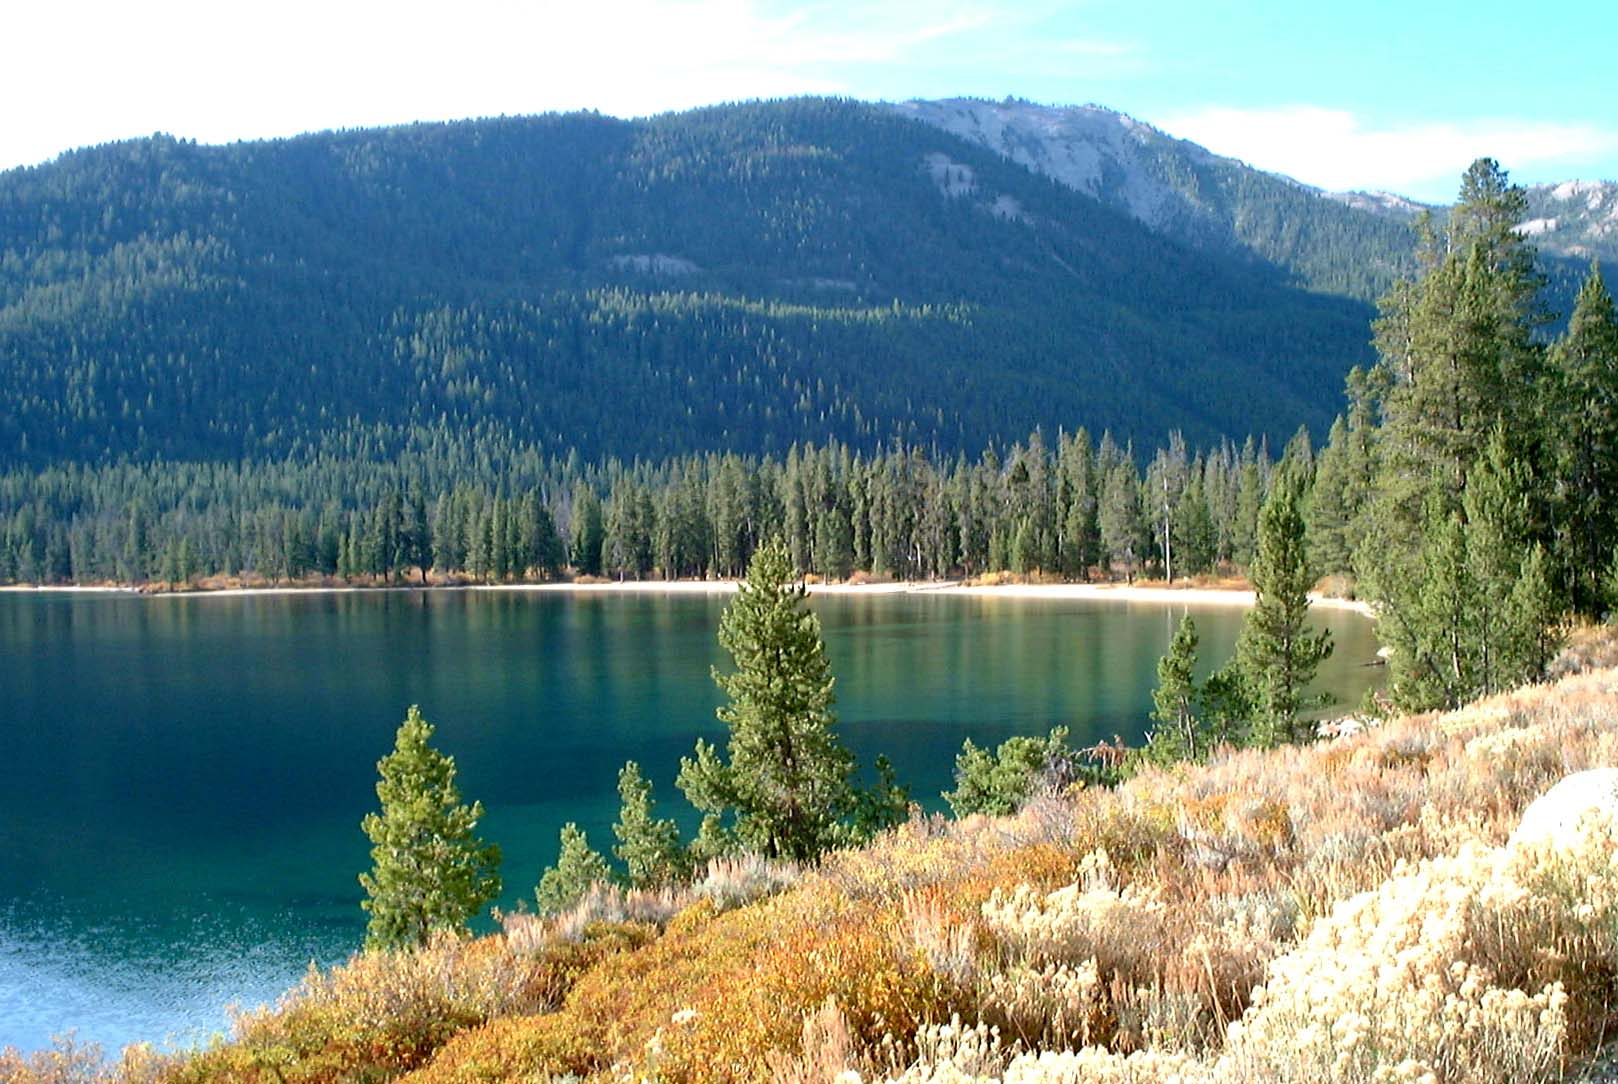 Body of water surrounded by vegetation, pine trees and tree covered mountain side in the background